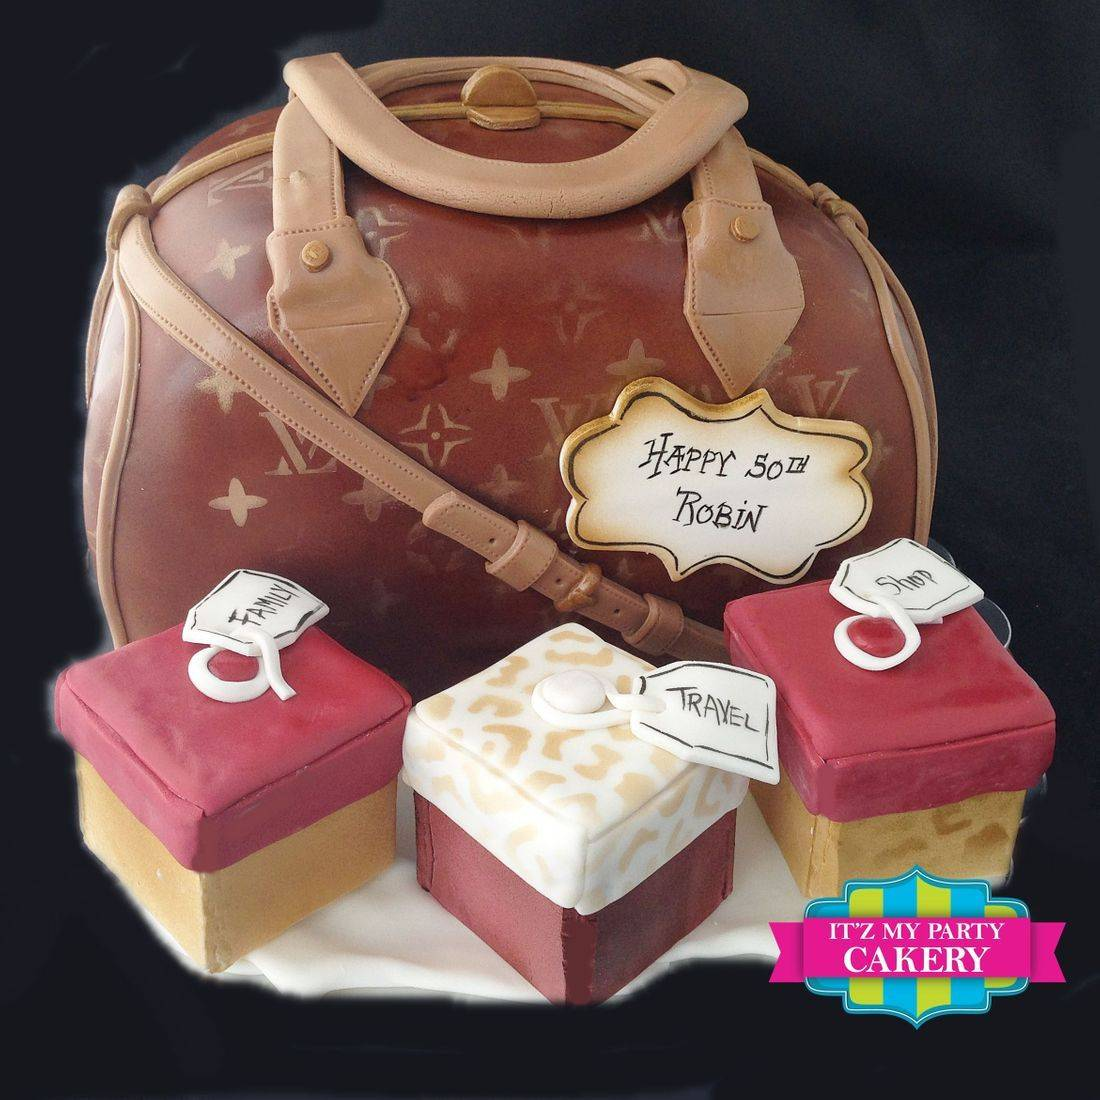 LV Purse Cake Dimensional Cake Milwaukee